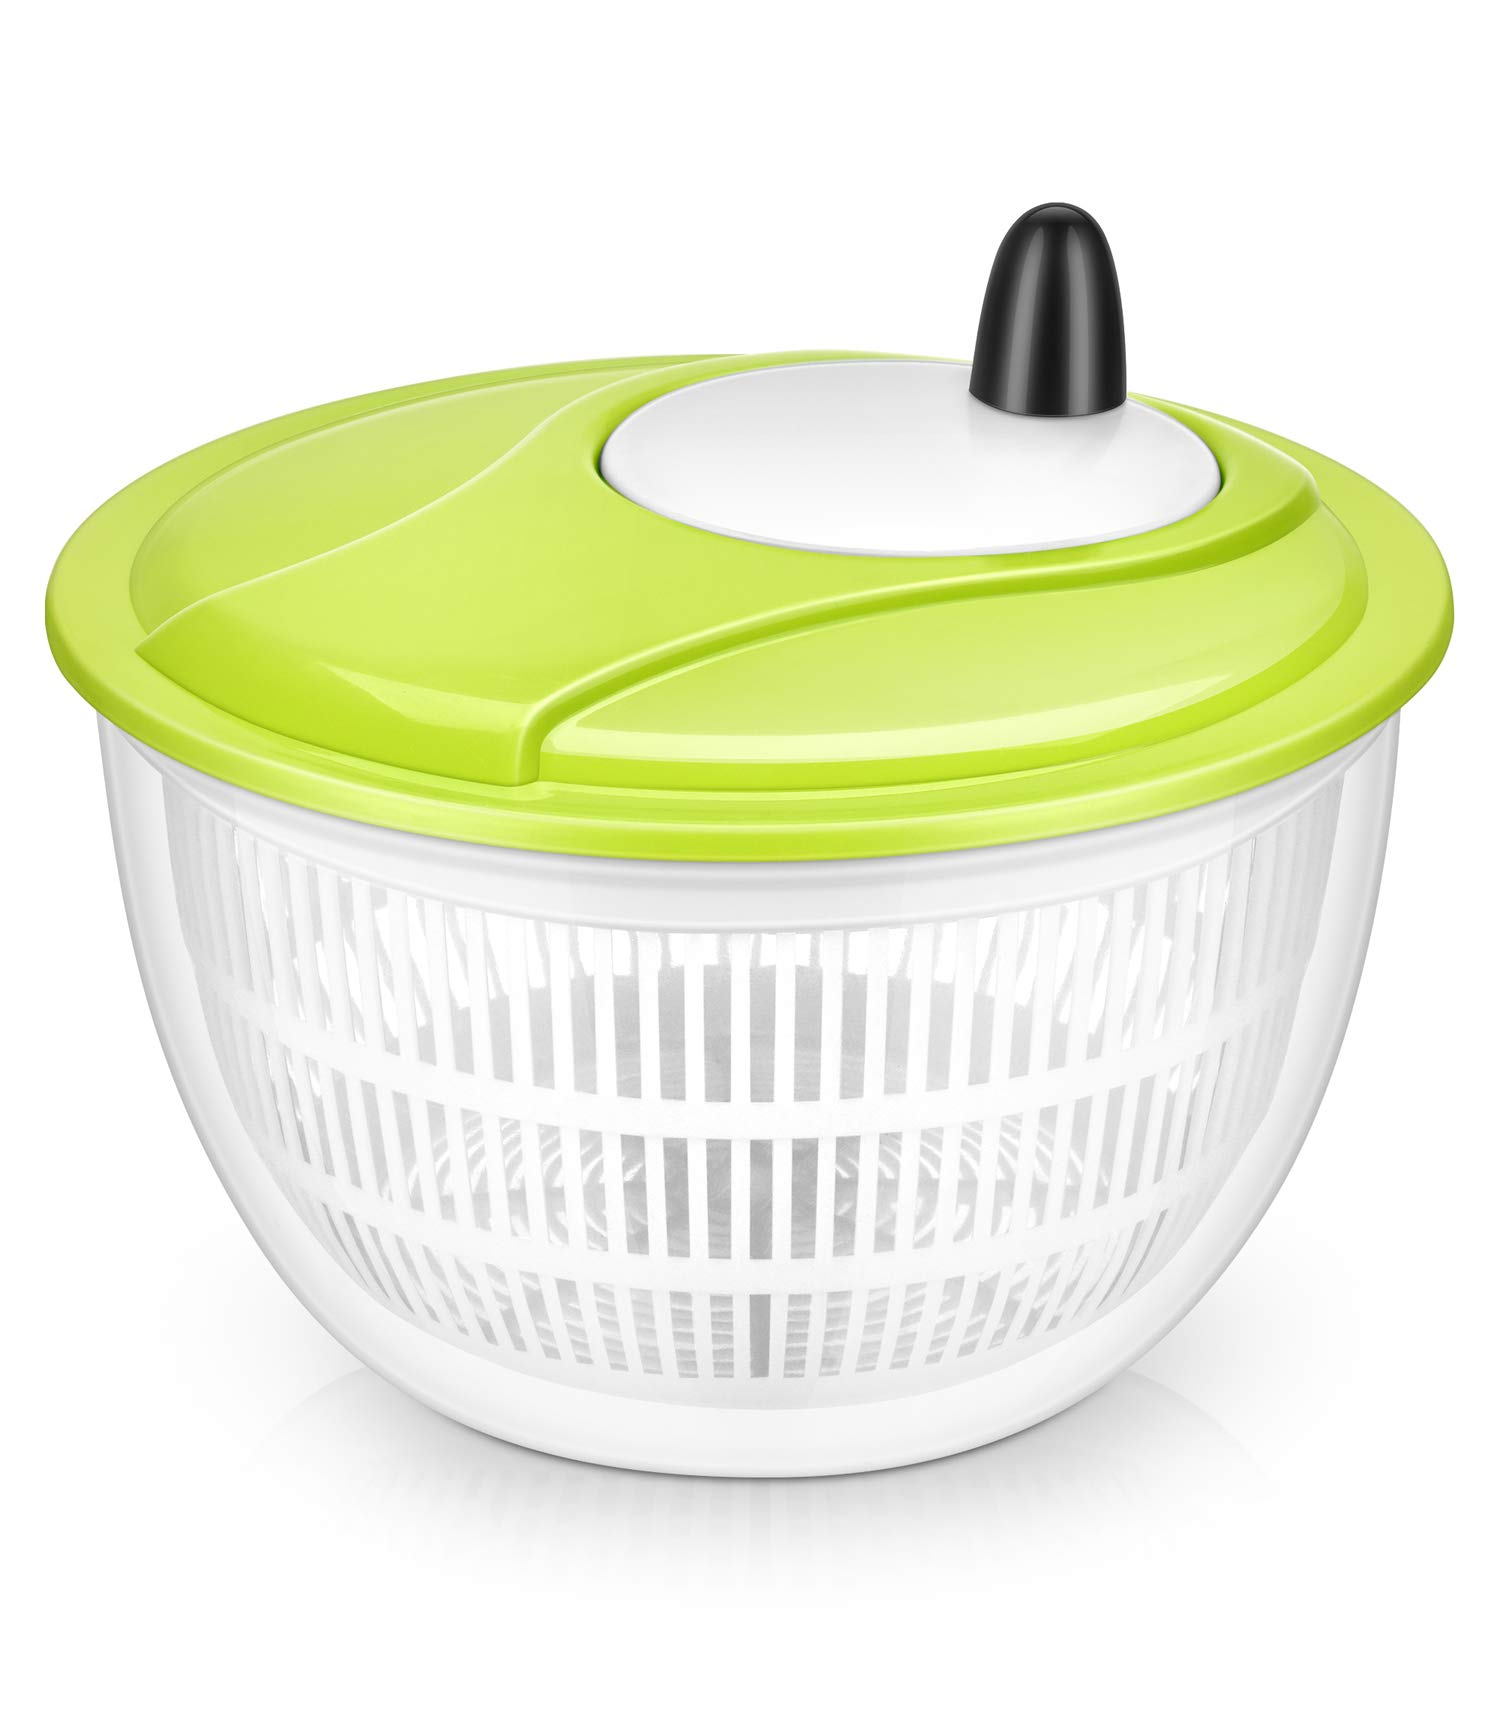 Lougnee Premium Large Salad Spinner 5 Quarts Vegetable Washer with Bowl by Lougnee